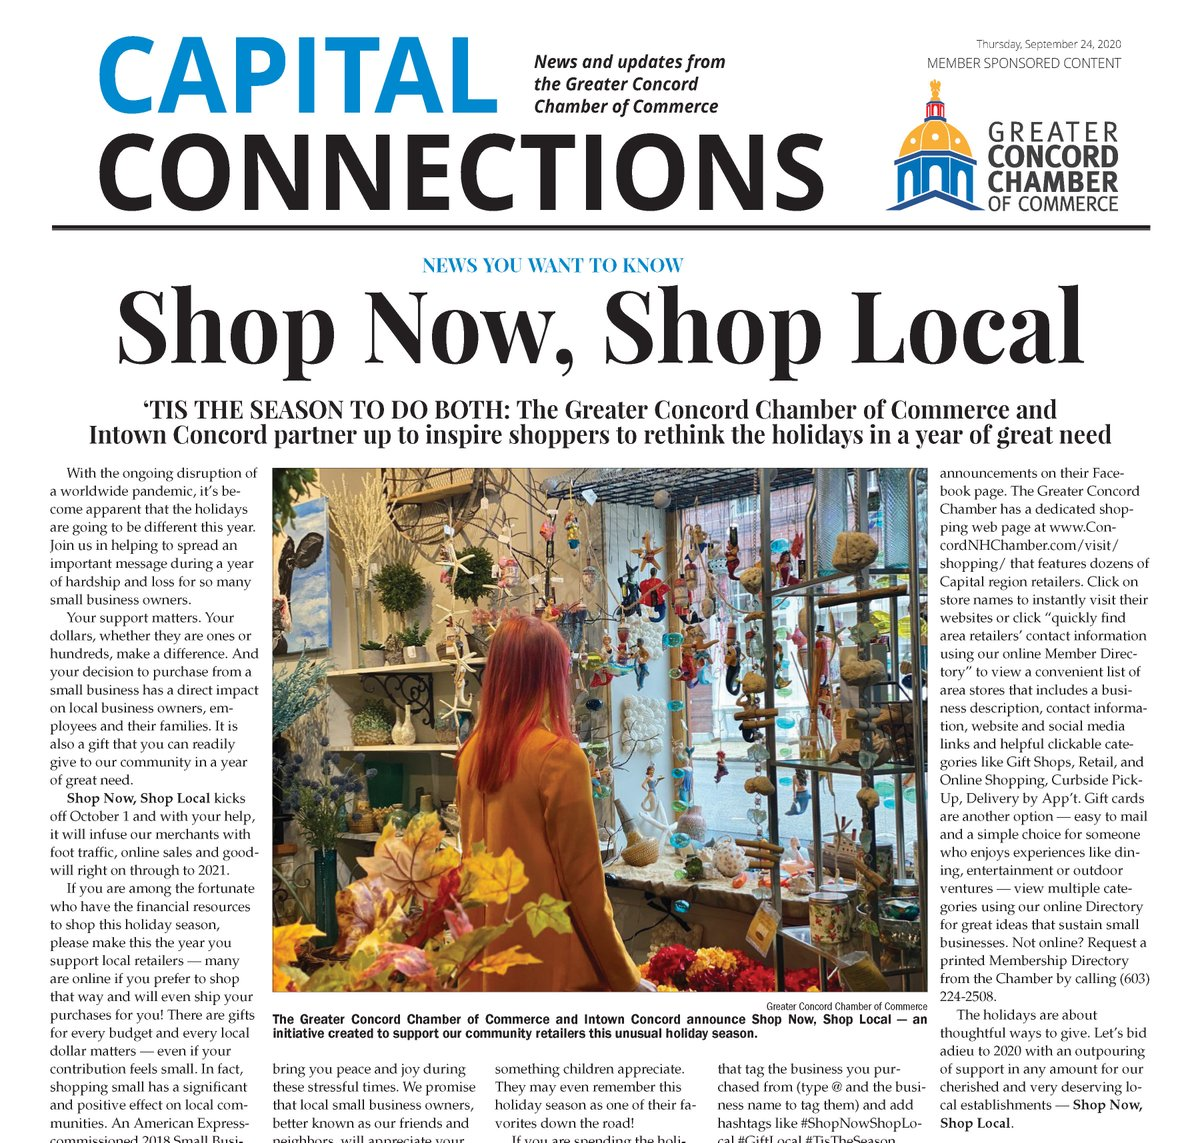 We're proud to announce #ShopNowShopLocal a campaign created in partnership with @IntownConcord to support merchants in the Greater Concord #NH area during this year of great need. If you missed it in today's @ConMonitorNews you can read it on our website: